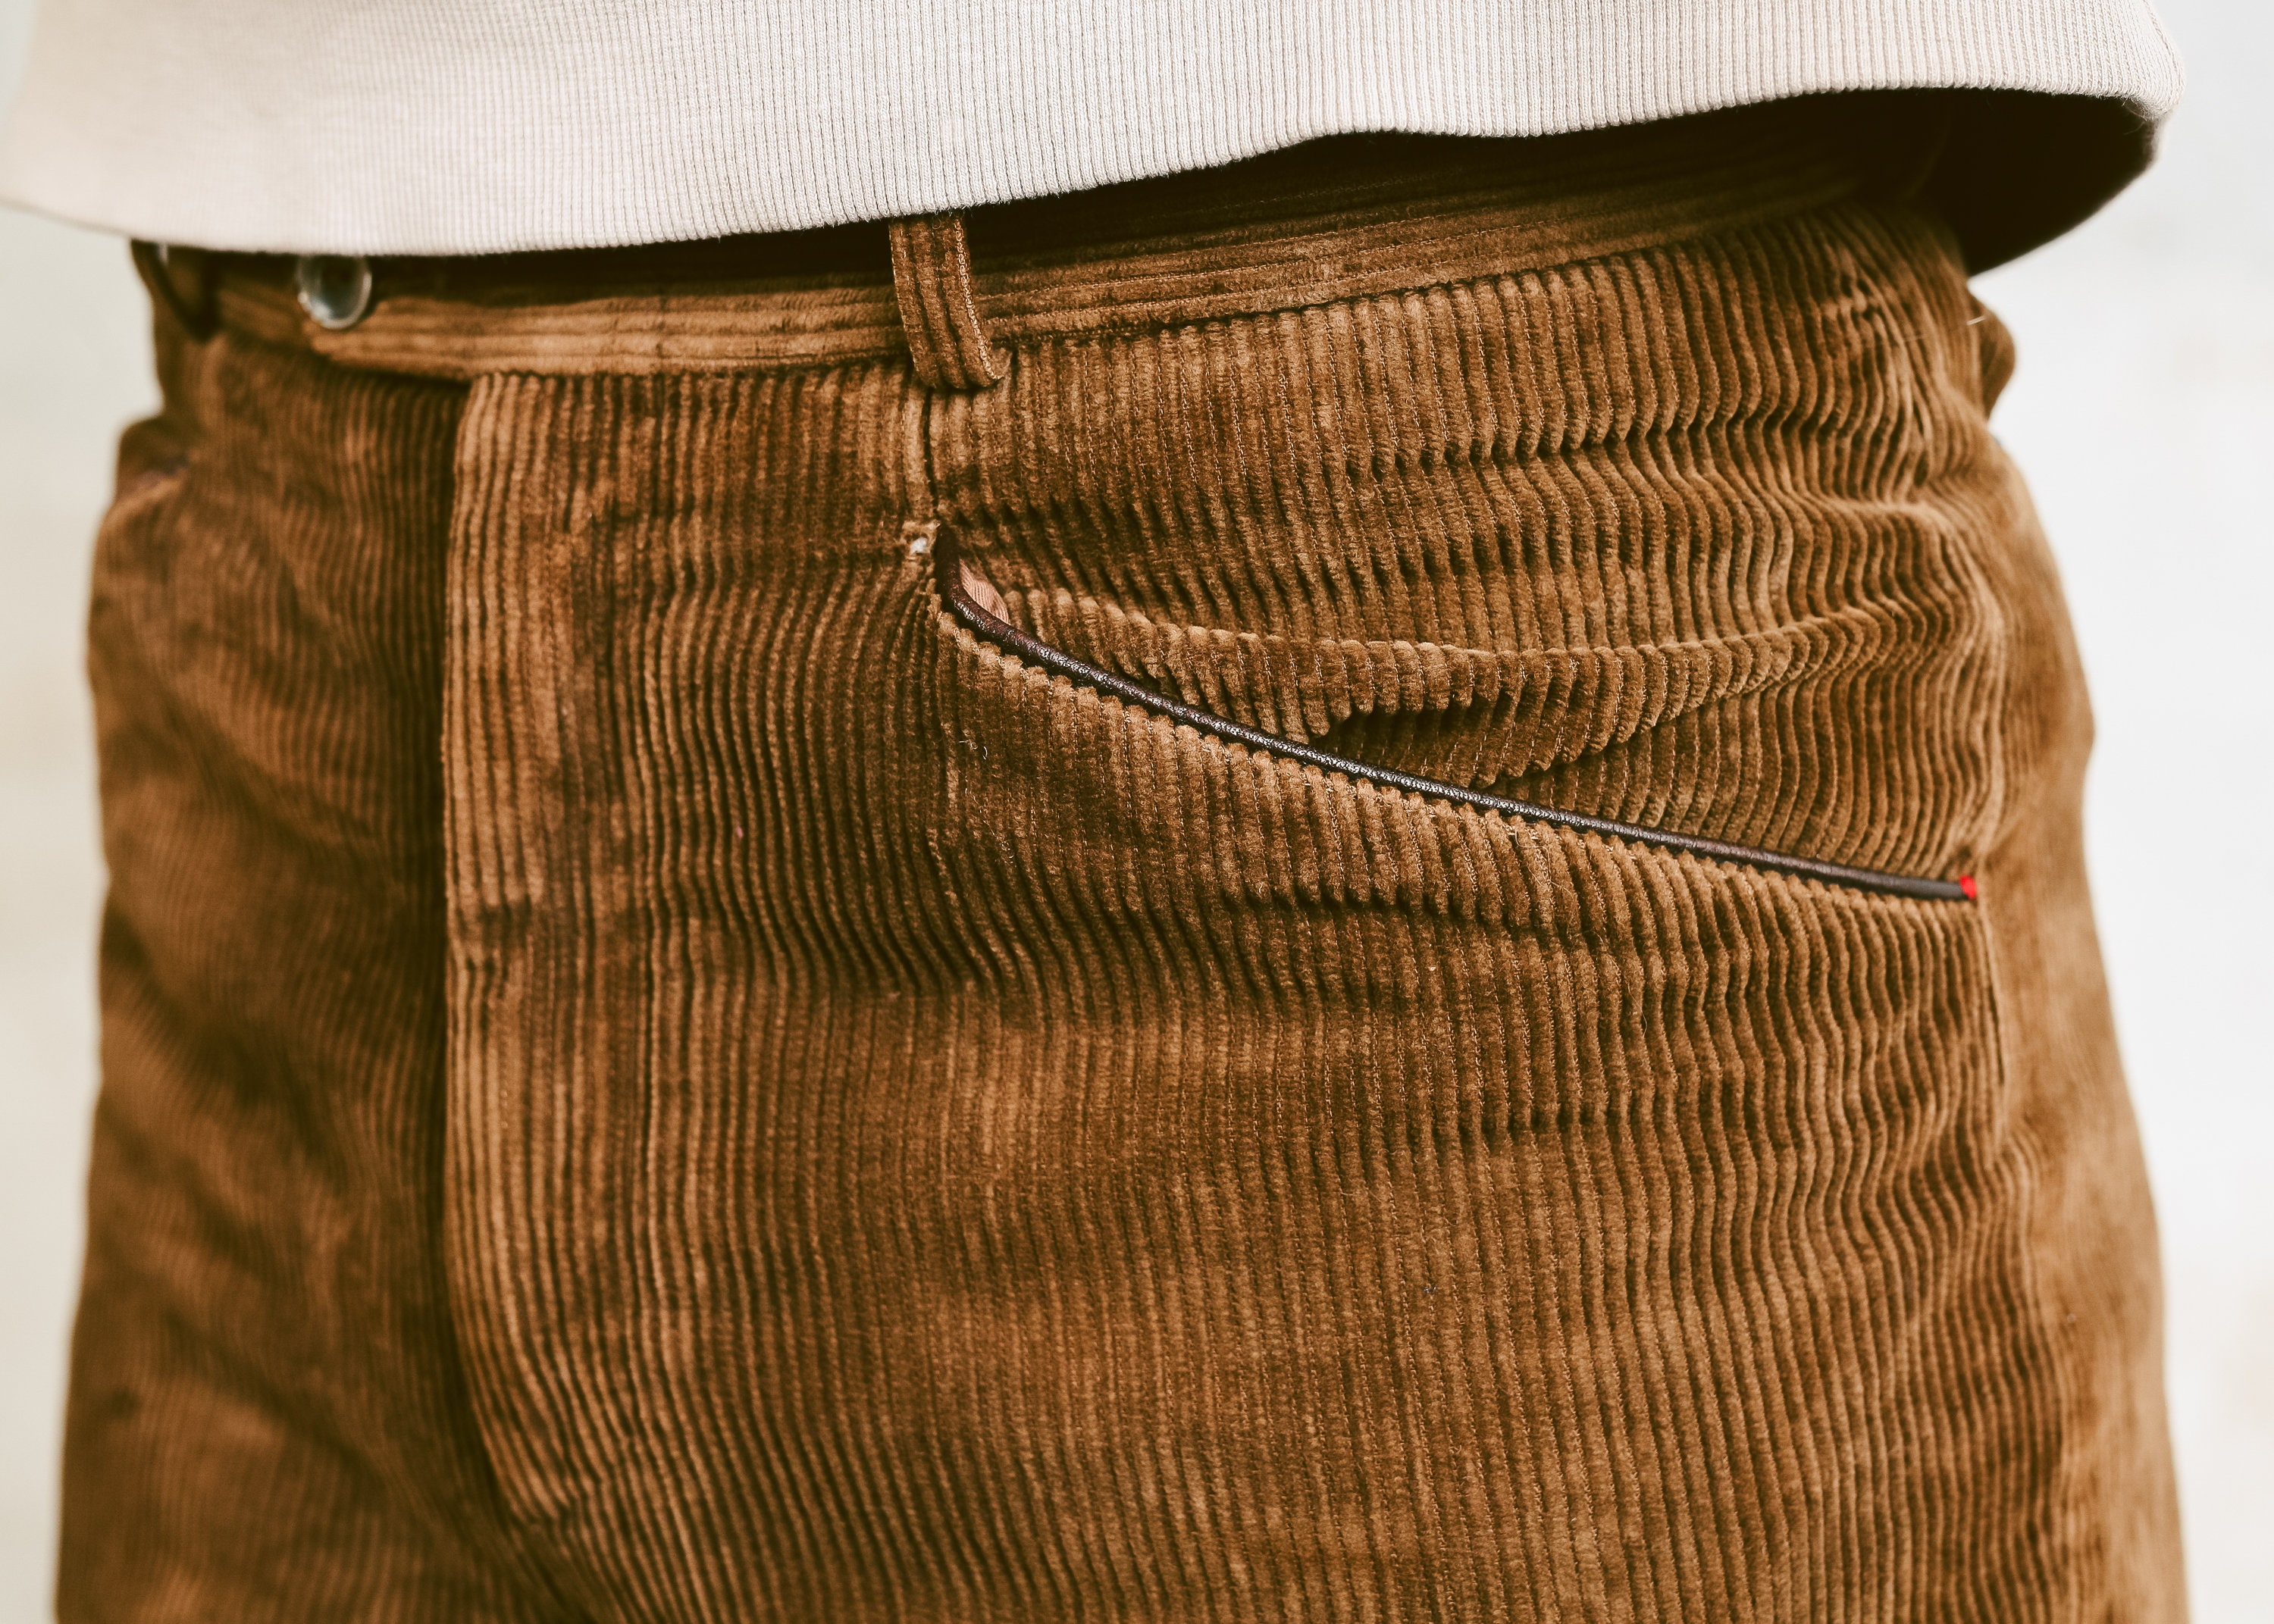 70s Men Corduroy Pants Vintage Brown Cord Trousers Nerd Dad Gift Normcore Straight Leg Size Small